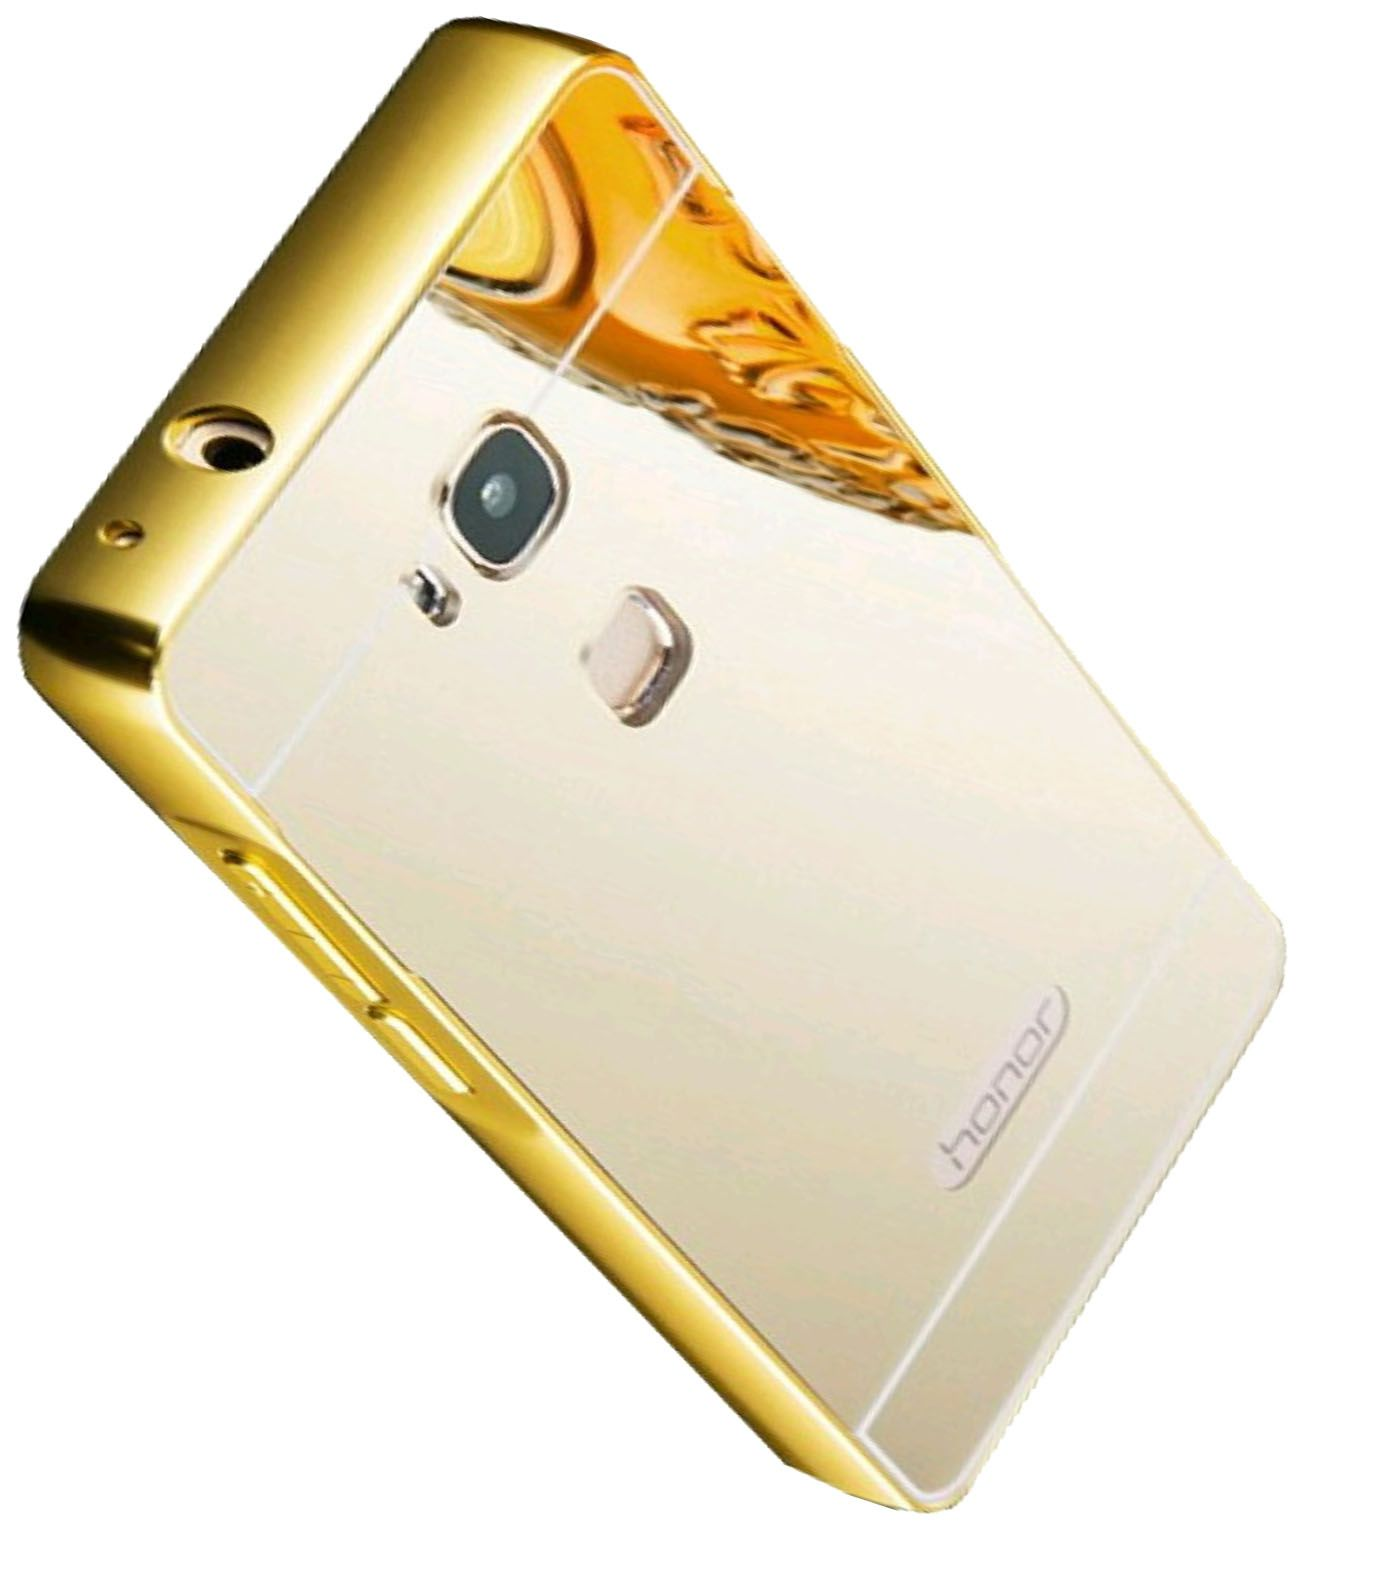 buy popular 6e9ad 4087a Huawei Honor 5X Cover by Sedoka - Golden